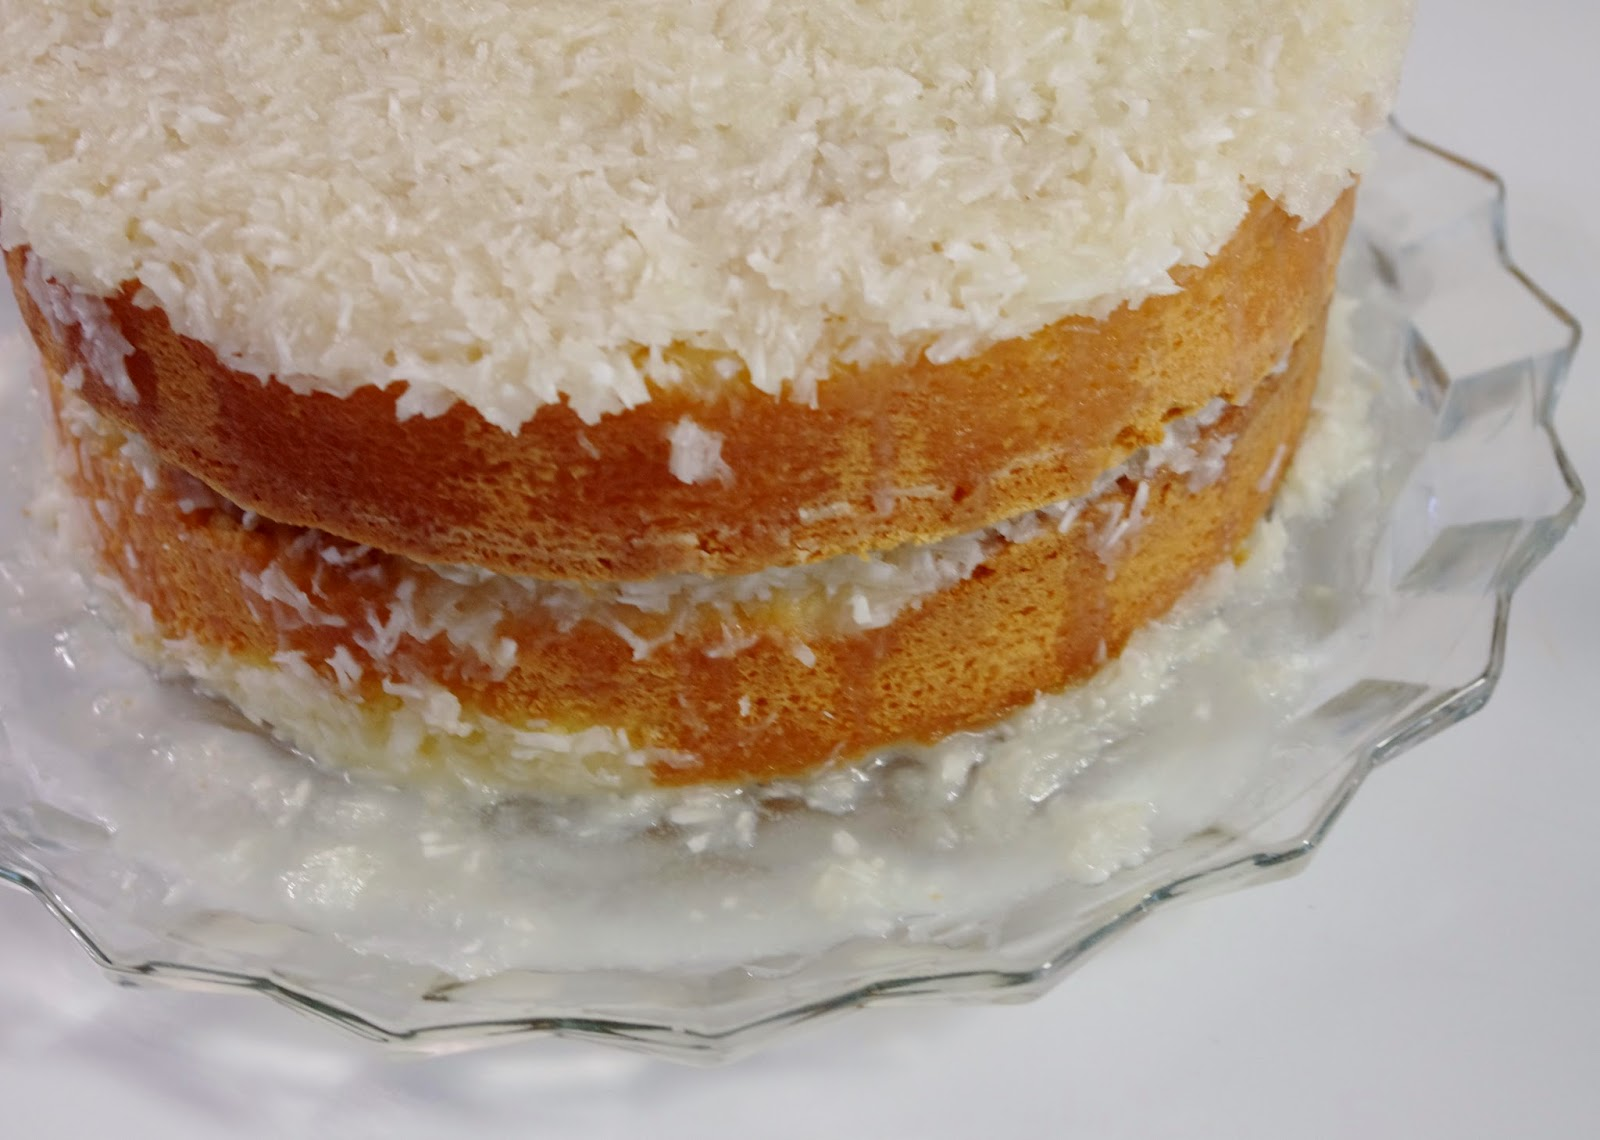 Cooked Coconut Cake Icing